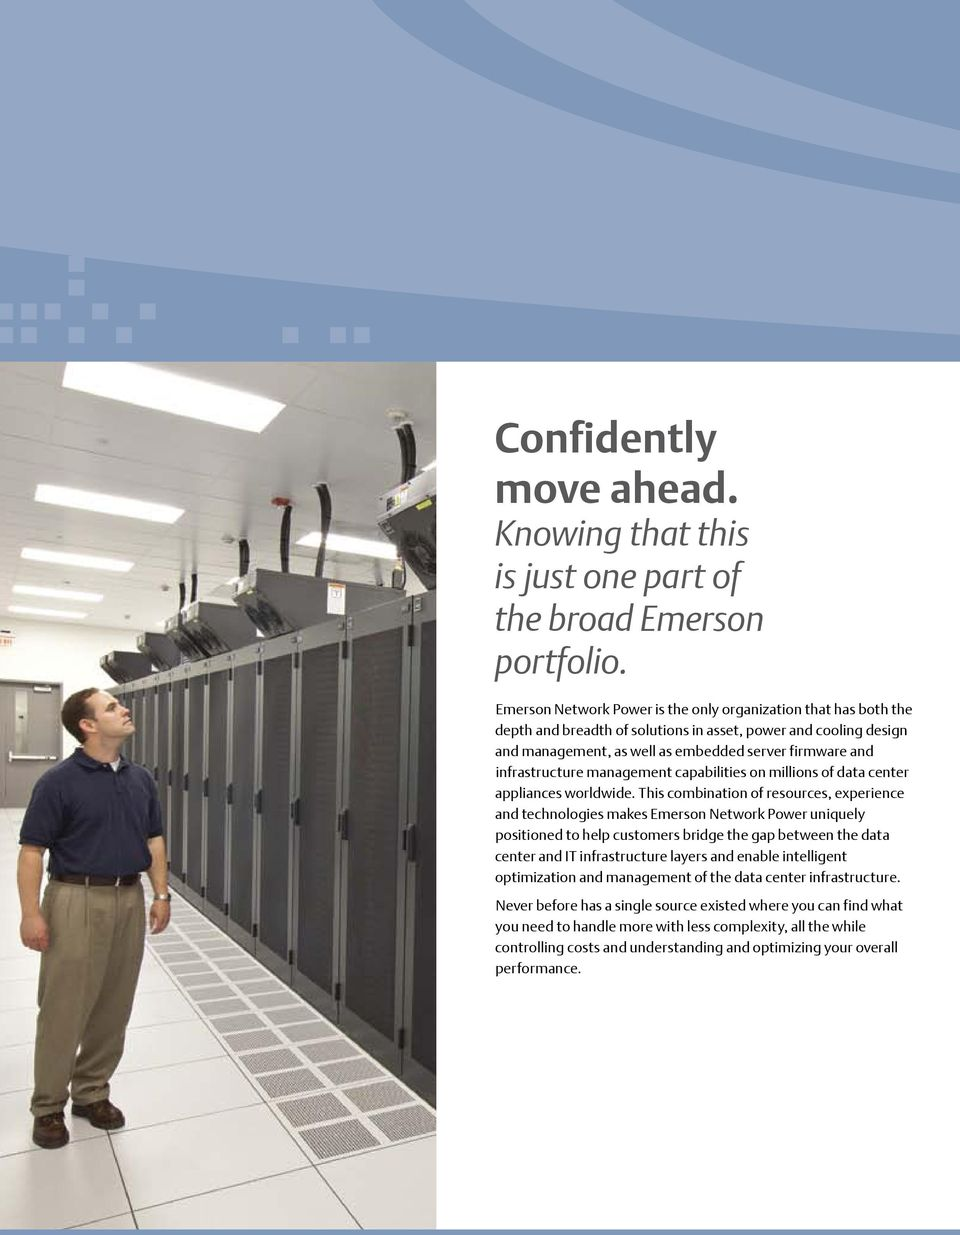 infrastructure management capabilities on millions of data center appliances worldwide.